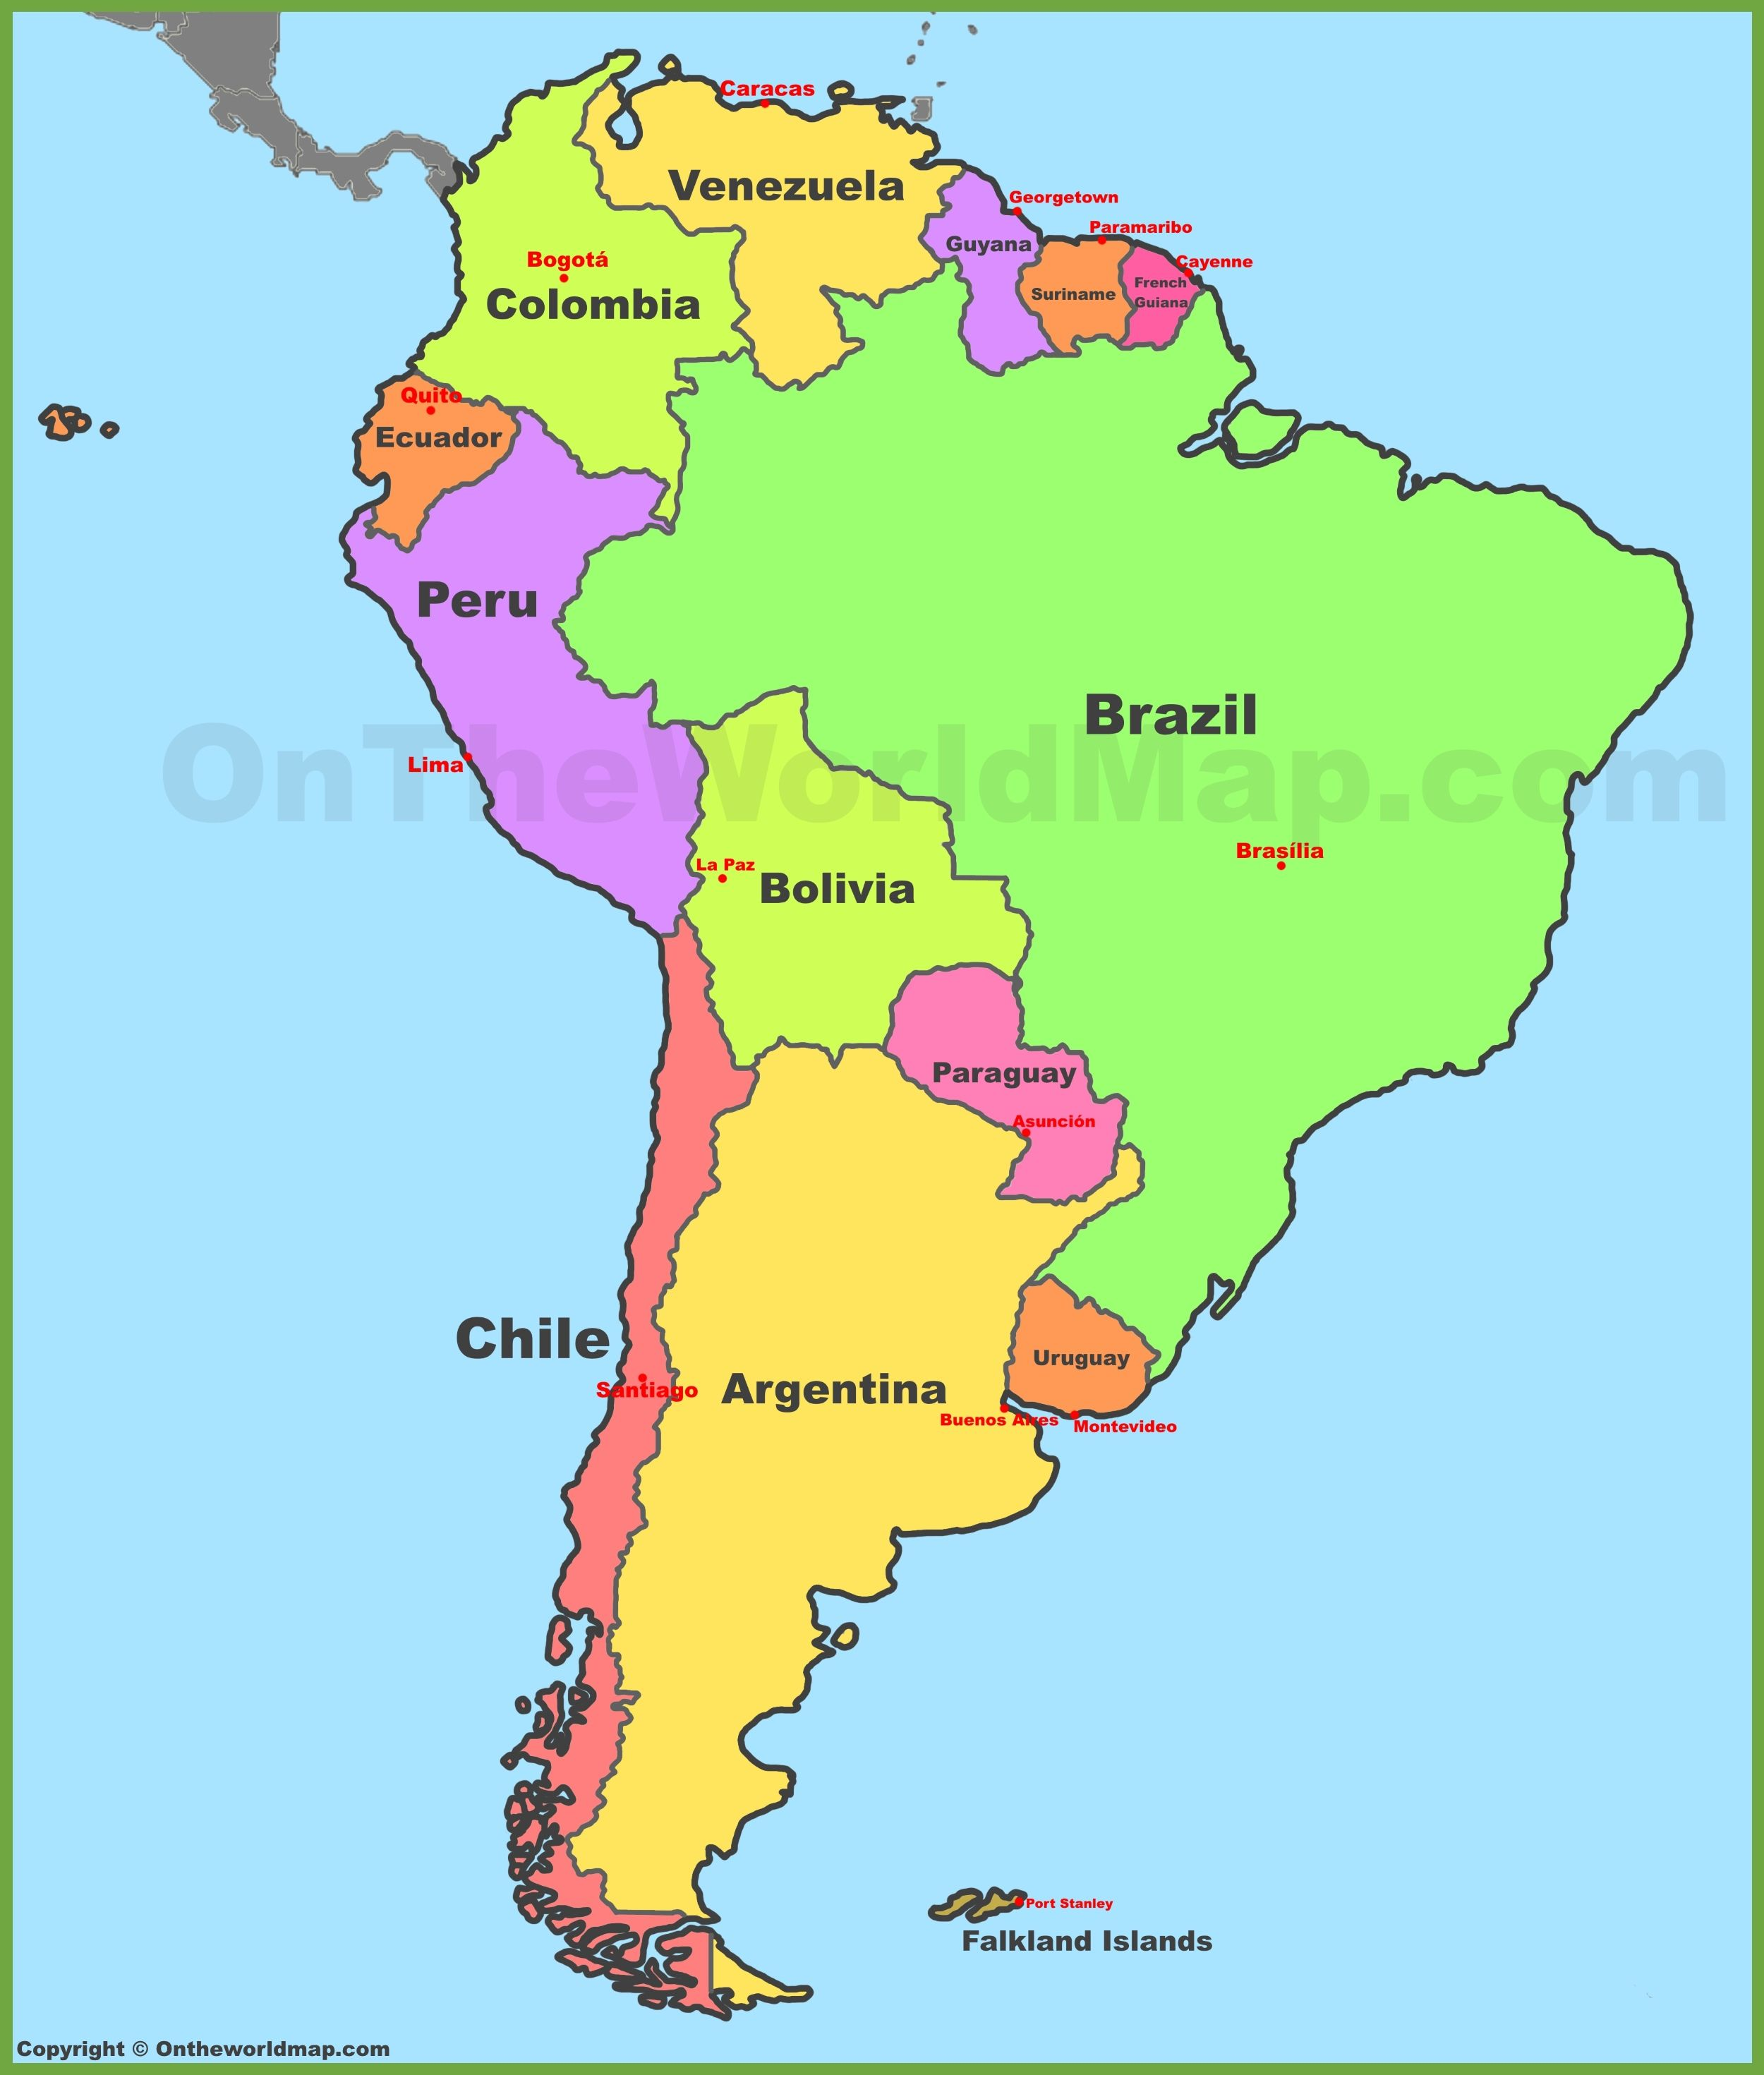 South America Country Map Map of South America with countries and capitals | color